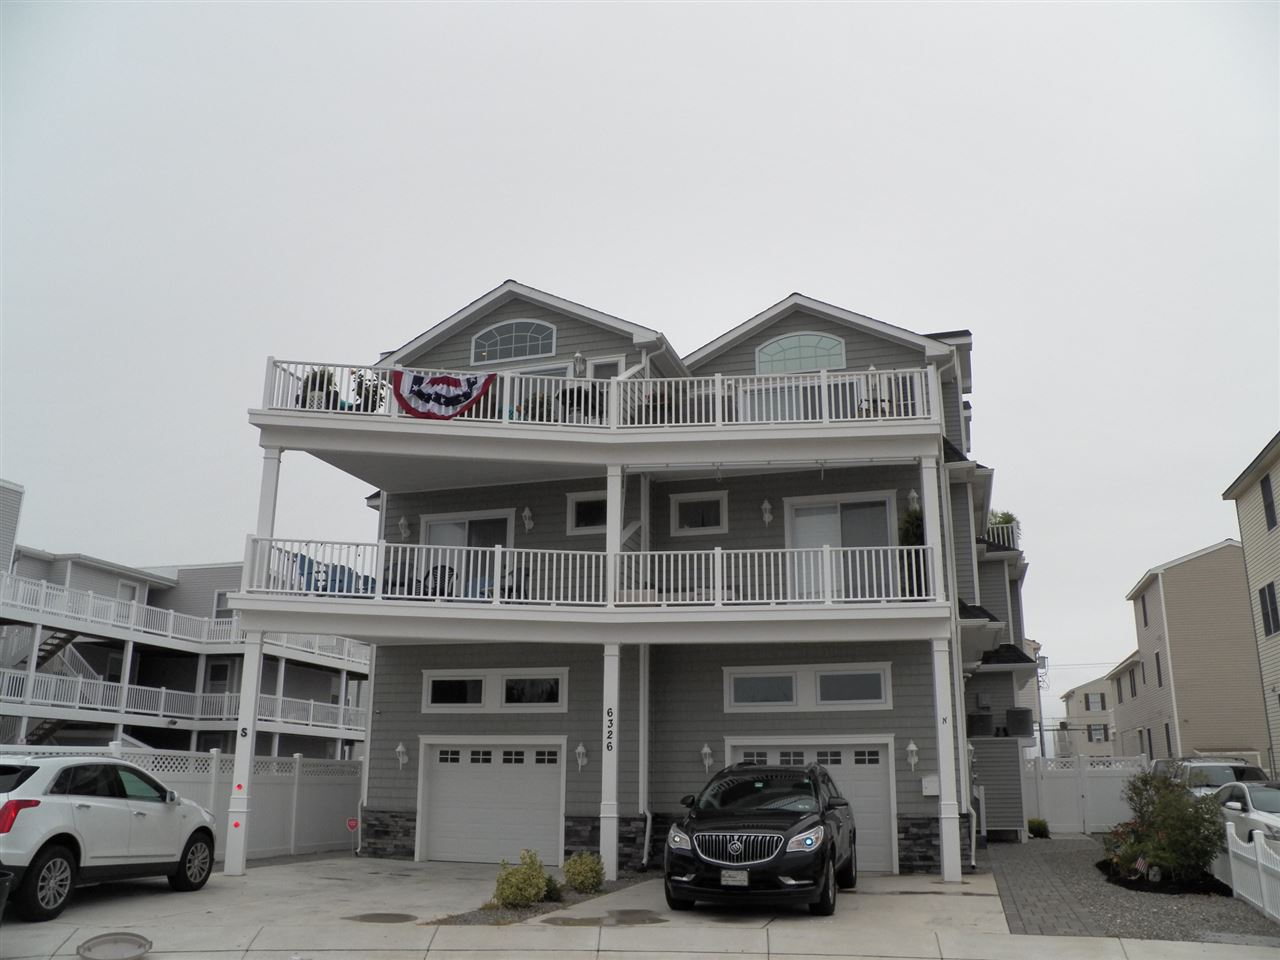 6326 Emmeus Road North Unit  - Sea Isle City